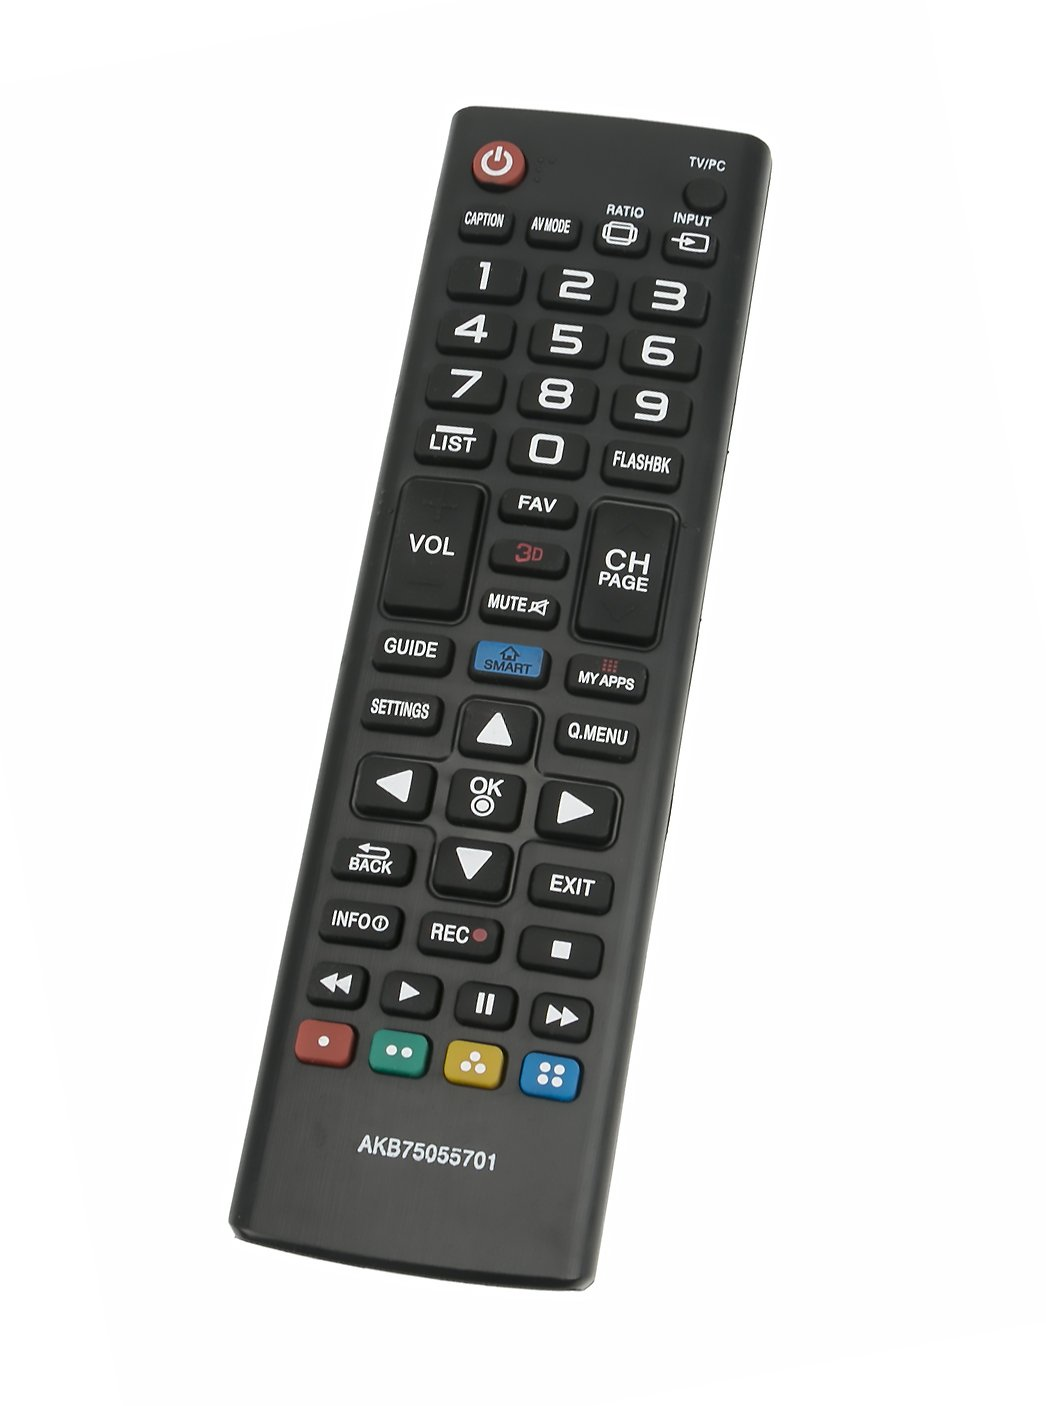 VINABTY New AKB75055701 Replace Remote fit for LG TV 32LF5850 32LF585B 32LF585D 42LF5850 42LF585T 55LF5850 60LB5800 60LF5850 AKB74915304 AKB74915305 AKB74915321 AKB74915356 AKB74915393 AKB73715608